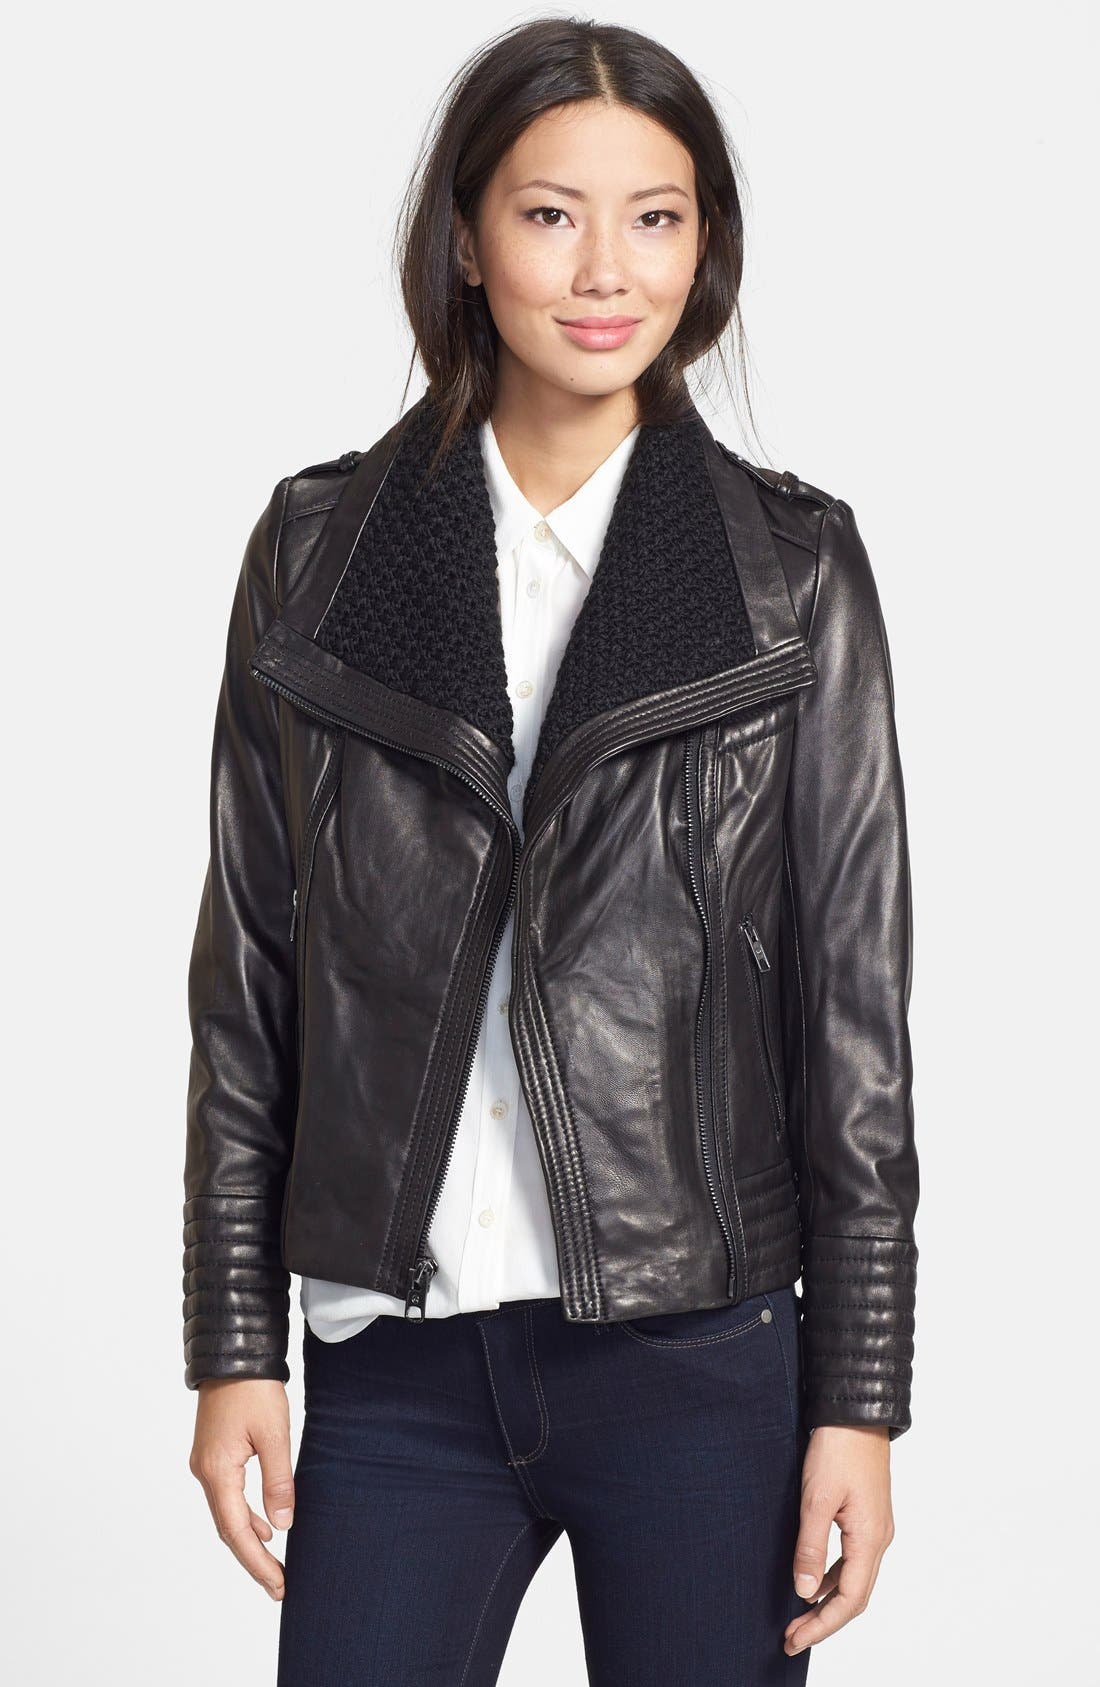 Alternate Image 1 Selected - MICHAEL Michael Kors Knit Collar Leather Jacket (Online Only)